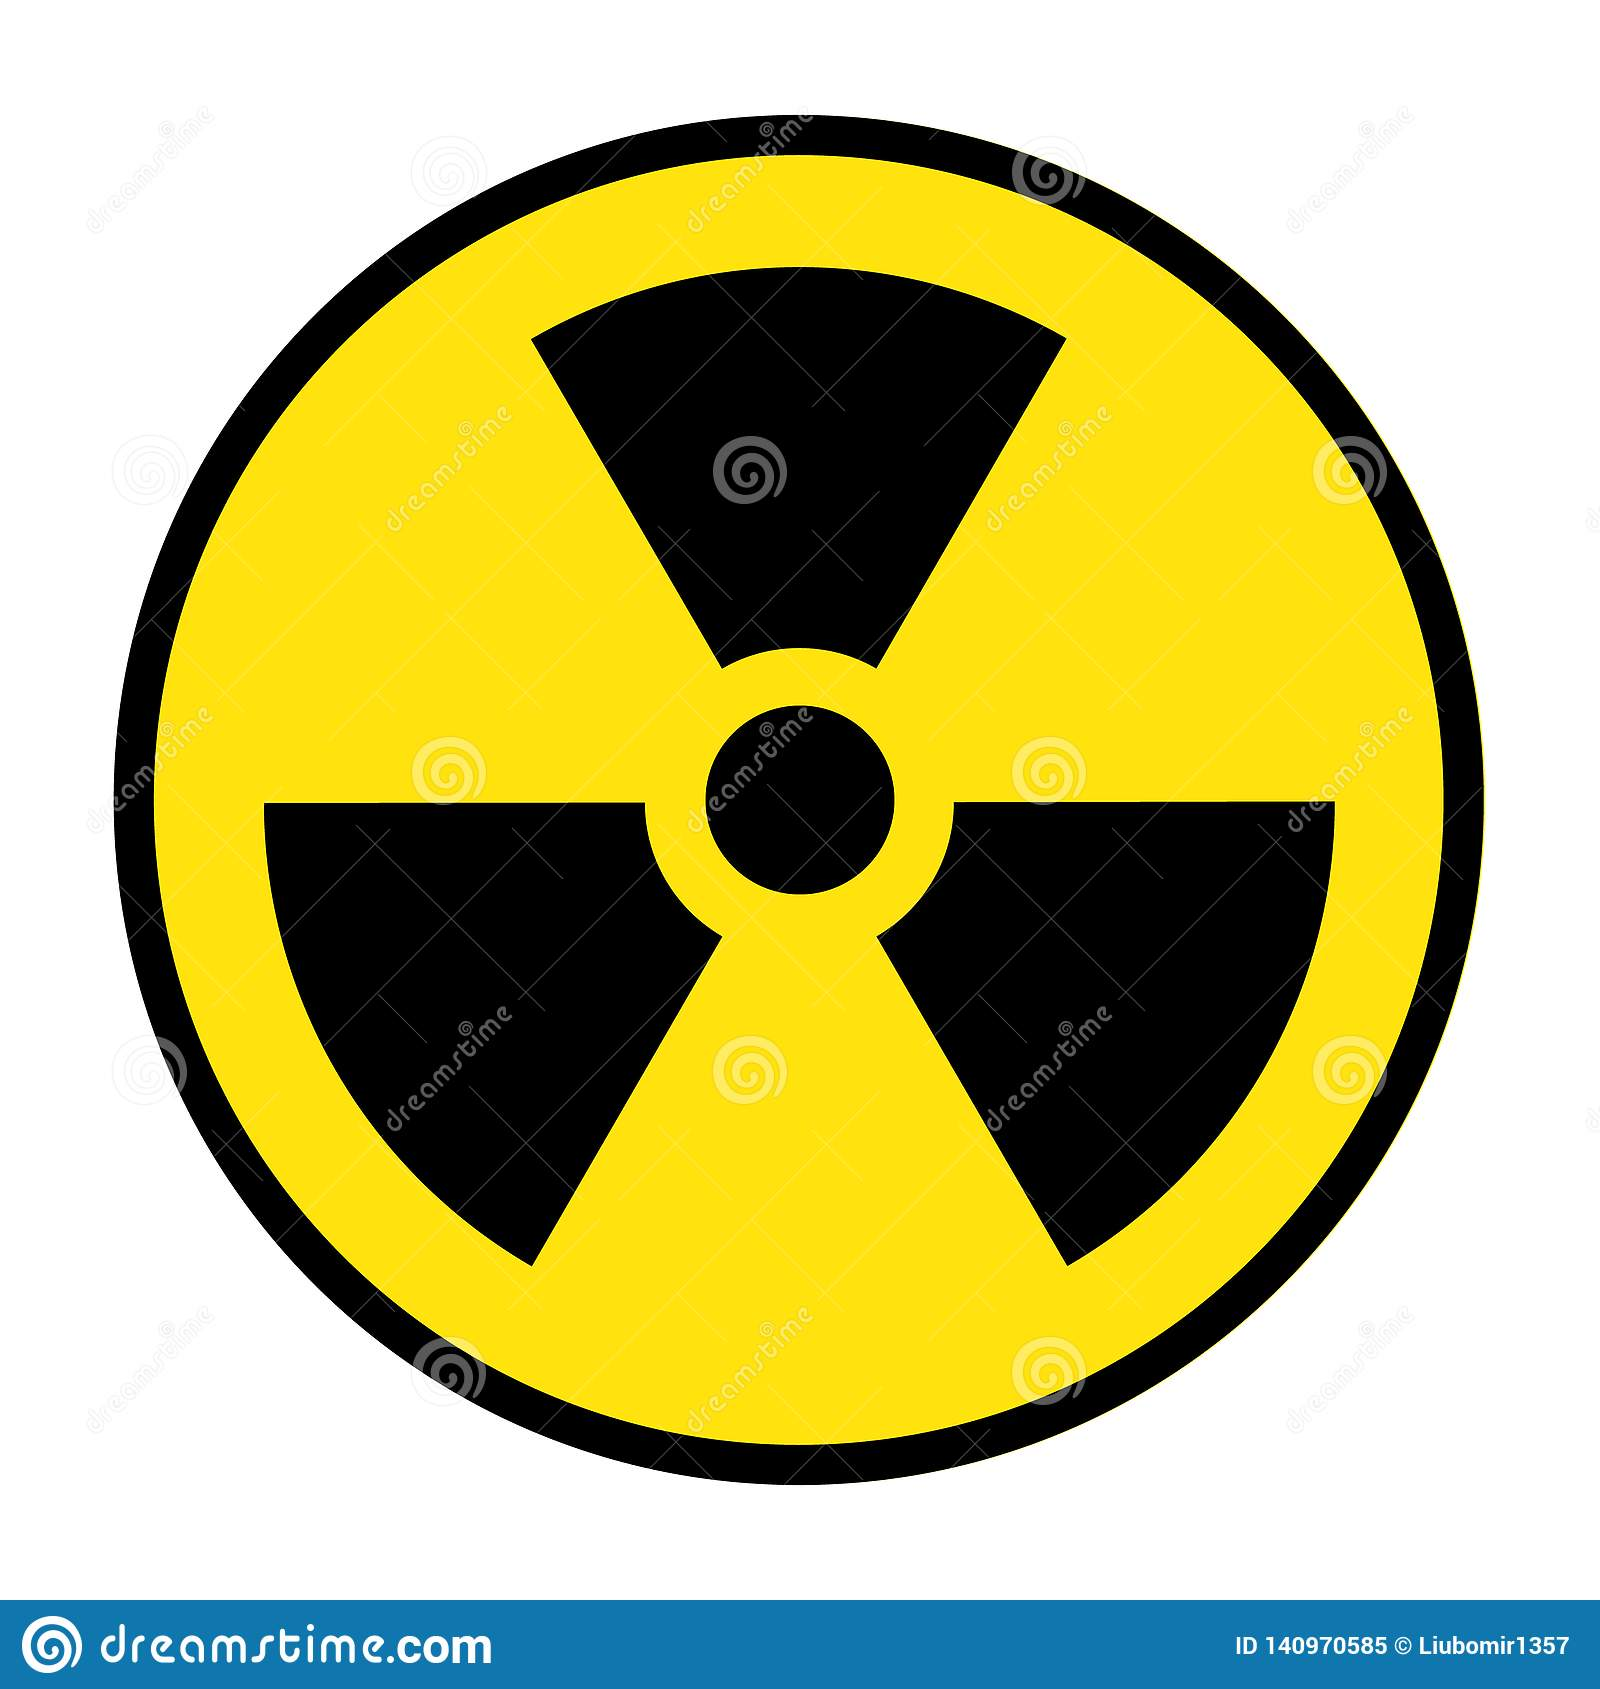 The radiation icon. Radiation symbol